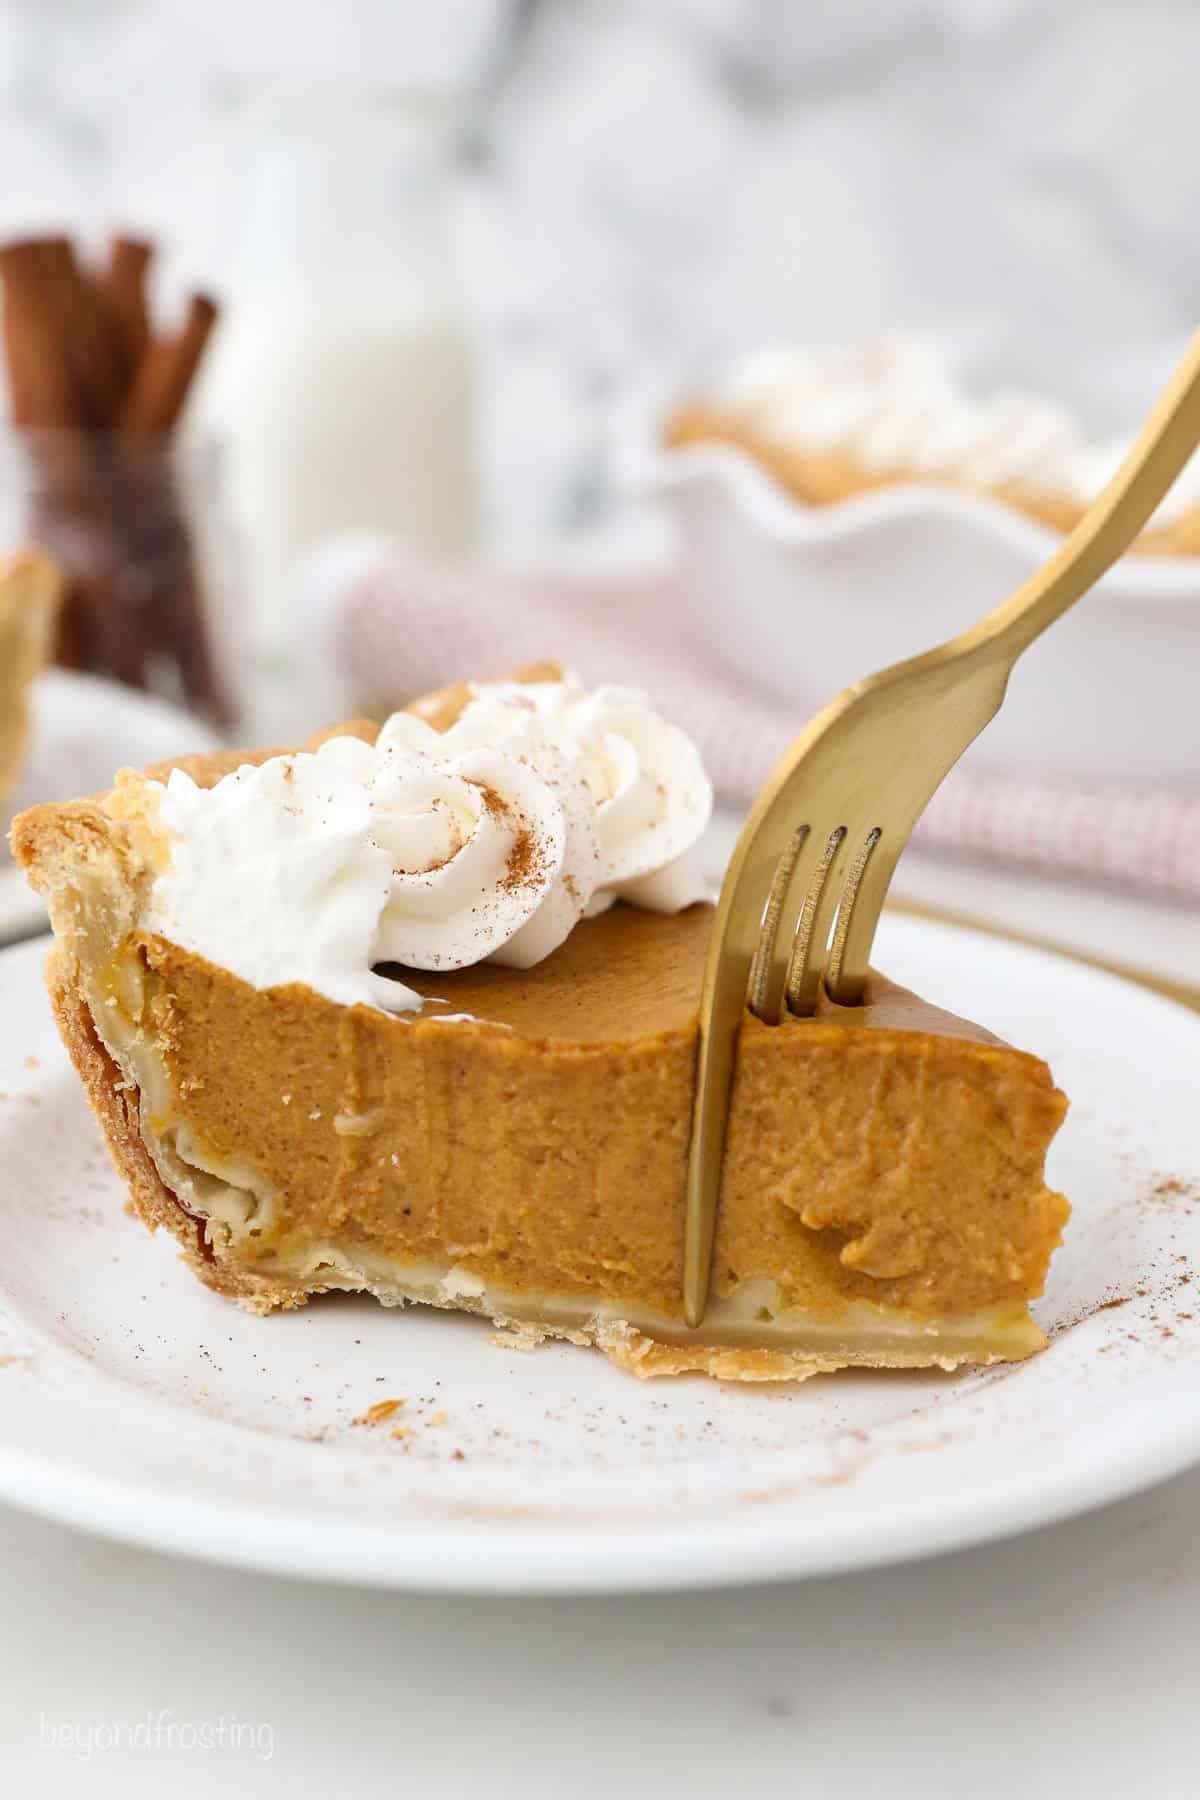 A fork cutting into a slice of Pumpkin Pie with Homemade Whipped Cream.